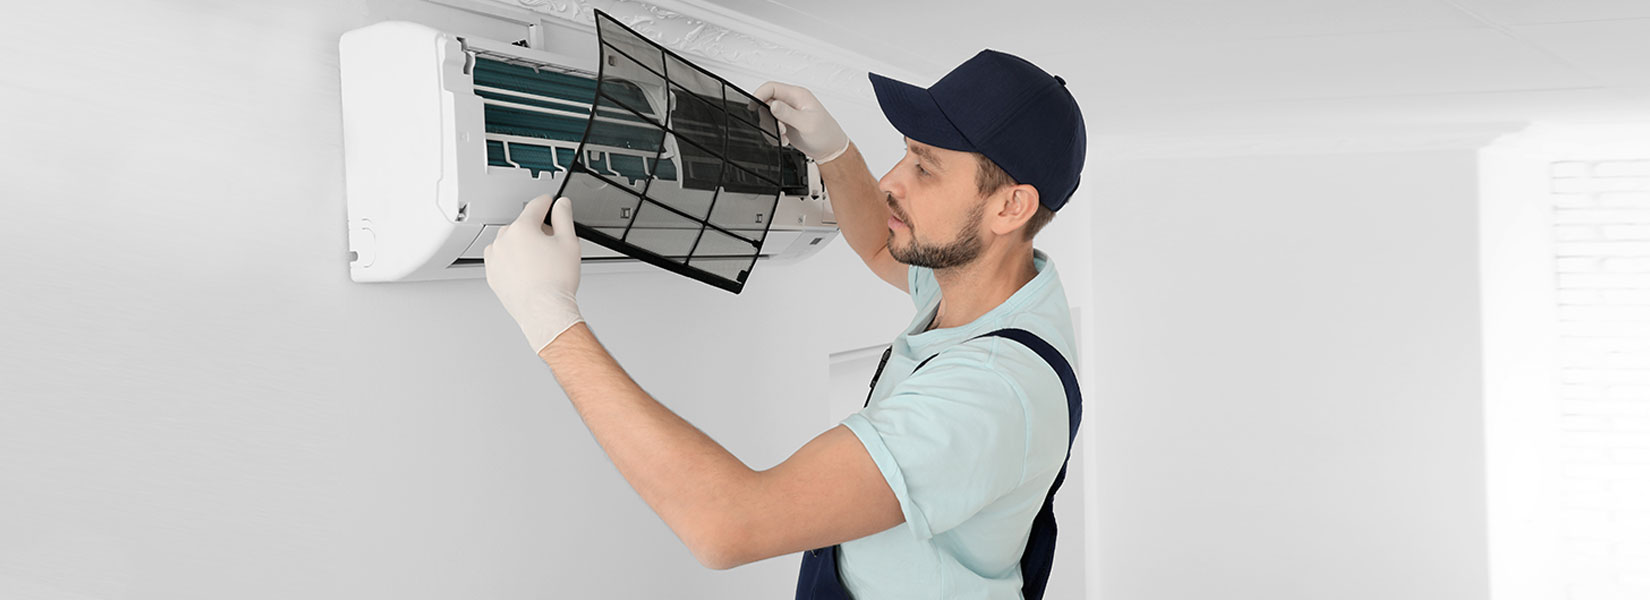 When Is The Best Time To Get Air Conditioner Cleaning Services?